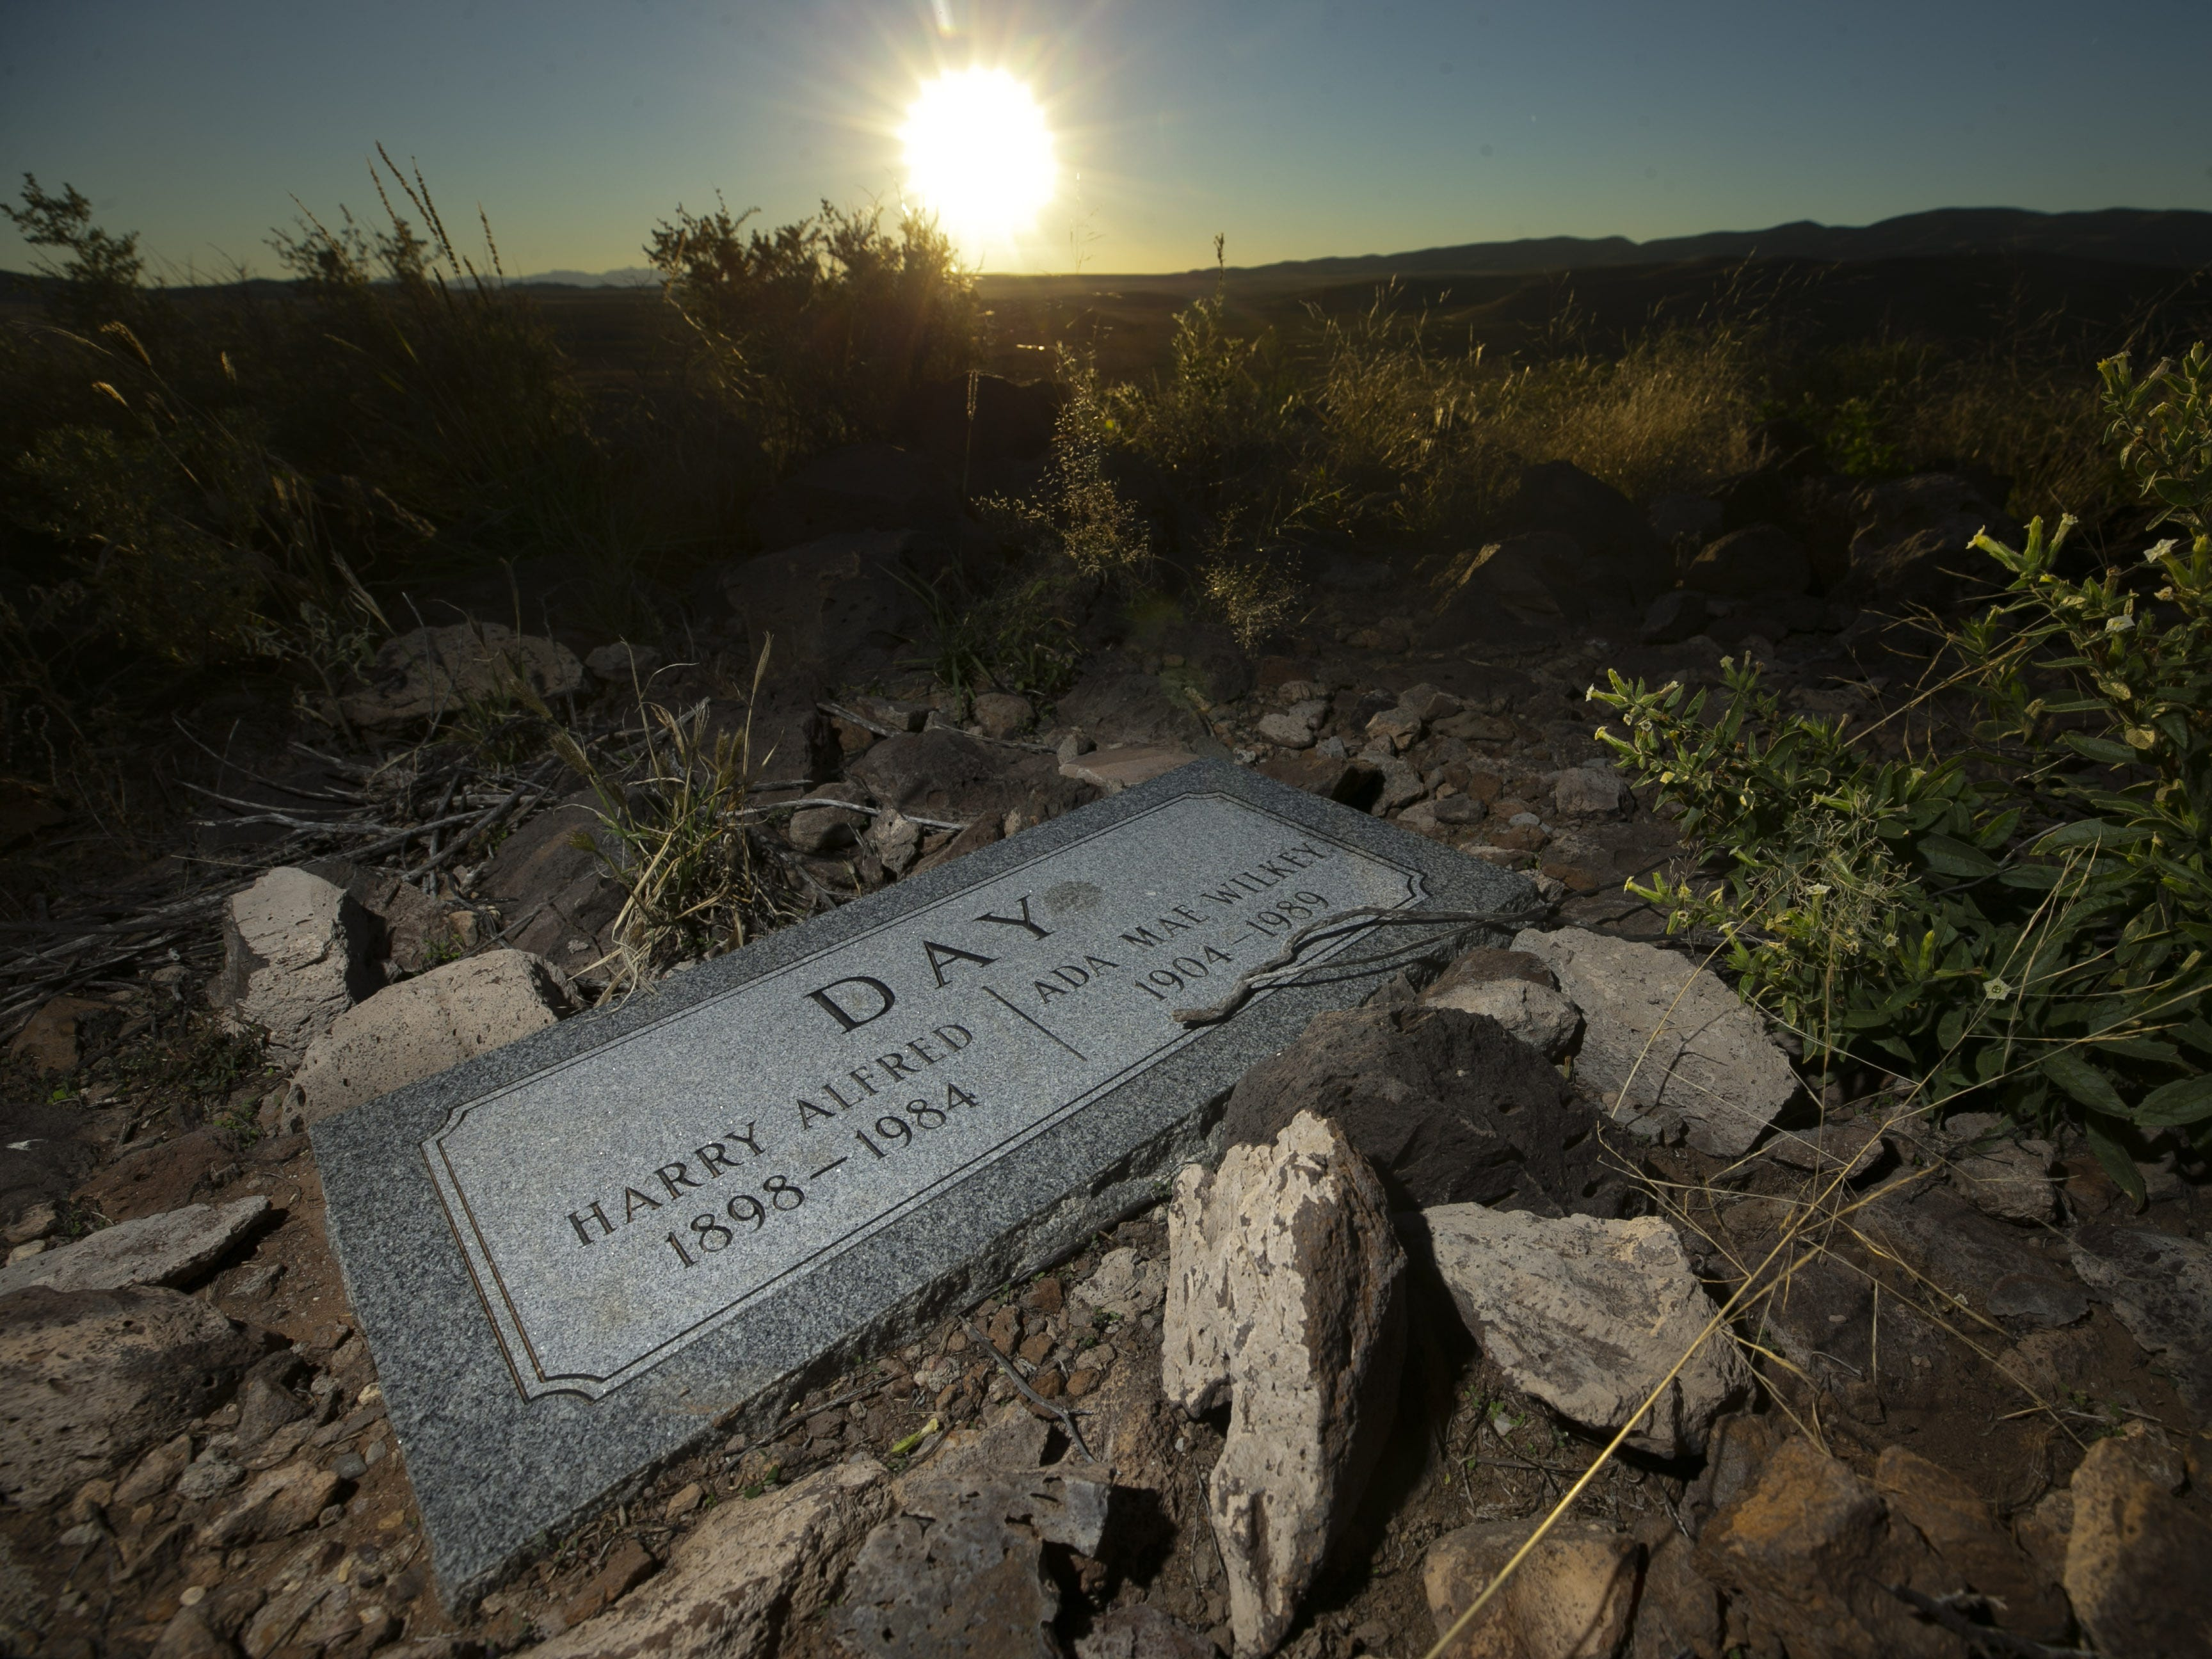 A headstone for Harry Alfred Day and Ada Mae Wilkey Day, the parents of Sandra Day O'Connor atop of Round Mountain on the Lazy B Ranch outside of Duncan, Ariz., on Nov. 2, 2018. Former Supreme Court Justice Sandra Day O'Connor grew up on the ranch. Ashes of Harry Alfred Day and Ada Mae Wilkey Day, were spread atop of Round Mountain. Sandra Day O'Connor has expressed that her ashes are also spread atop the mountain when she dies, according to her brother, Alan Day.